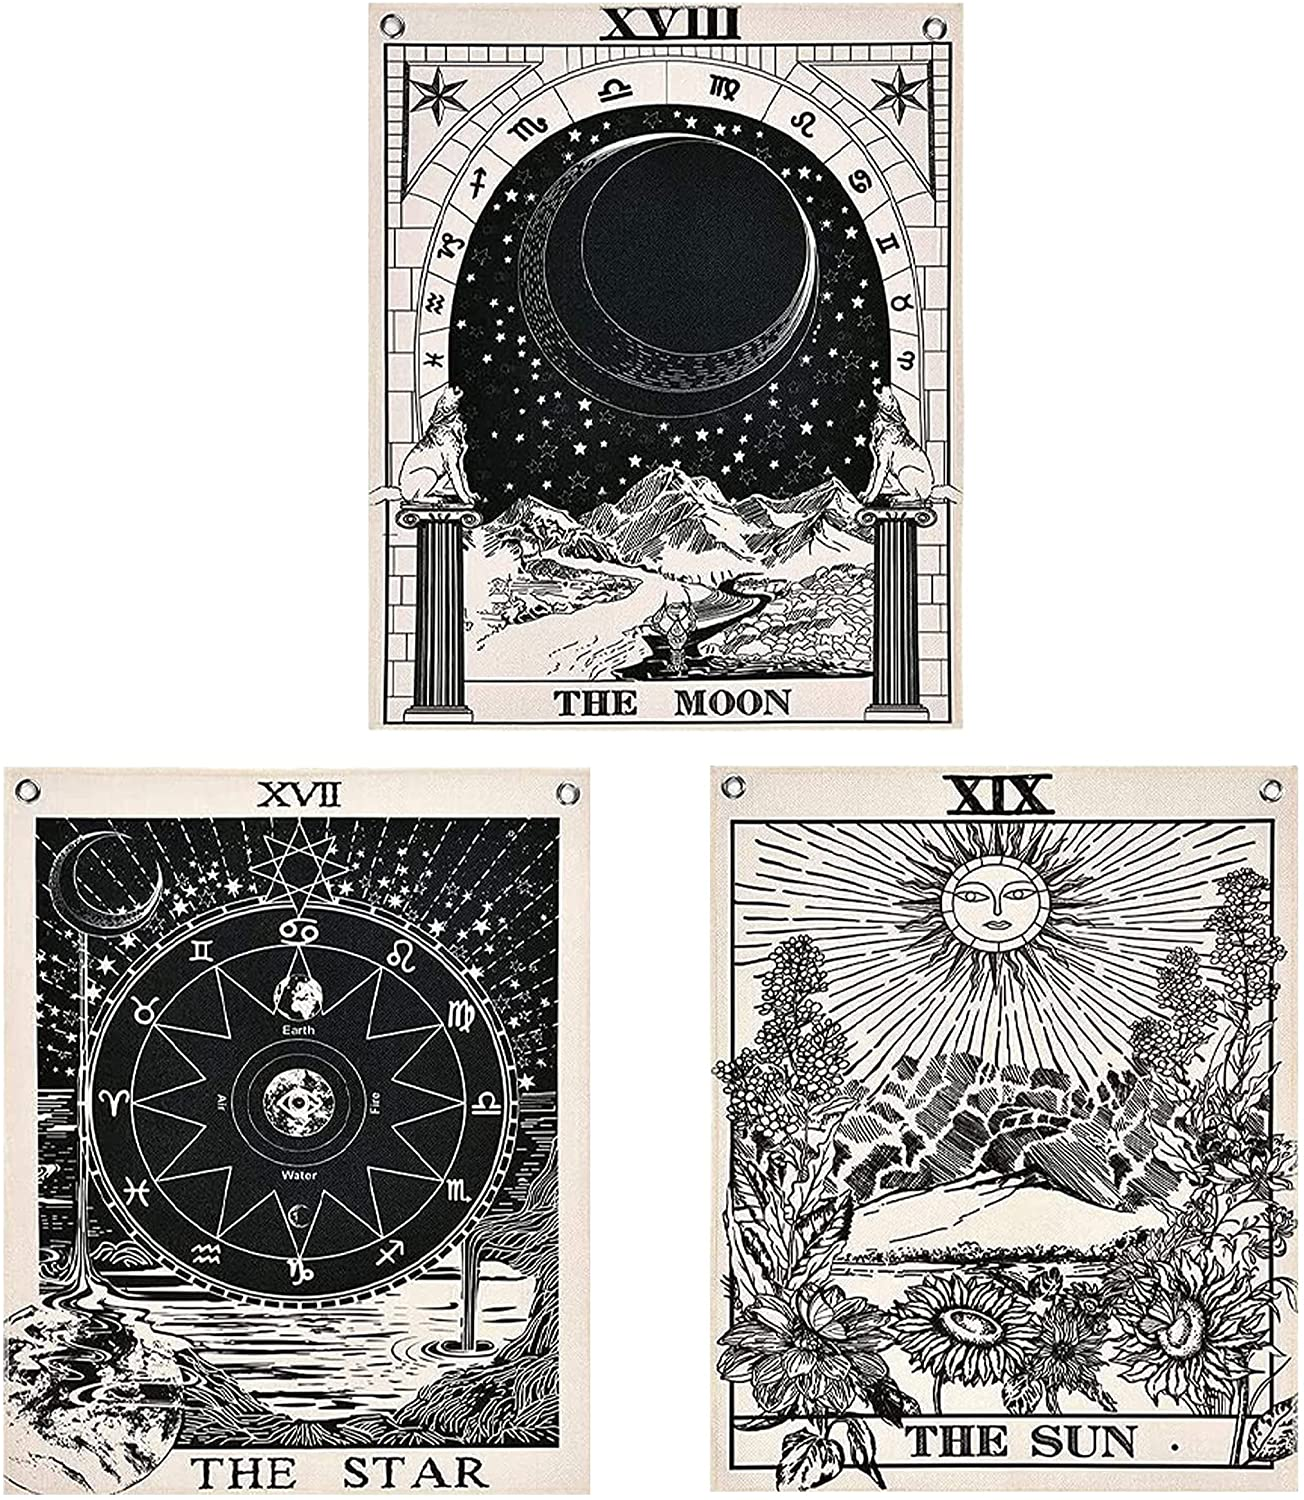 Tarot Card Tapestry Sun Moon Tapestry Small Mini Bohemian Wall Tapestry Wall Hanging Colorful Large Tapestry astrology hippie room decor witchy Spiritual Tapestry Indie Poster (20x16 In) Black & White